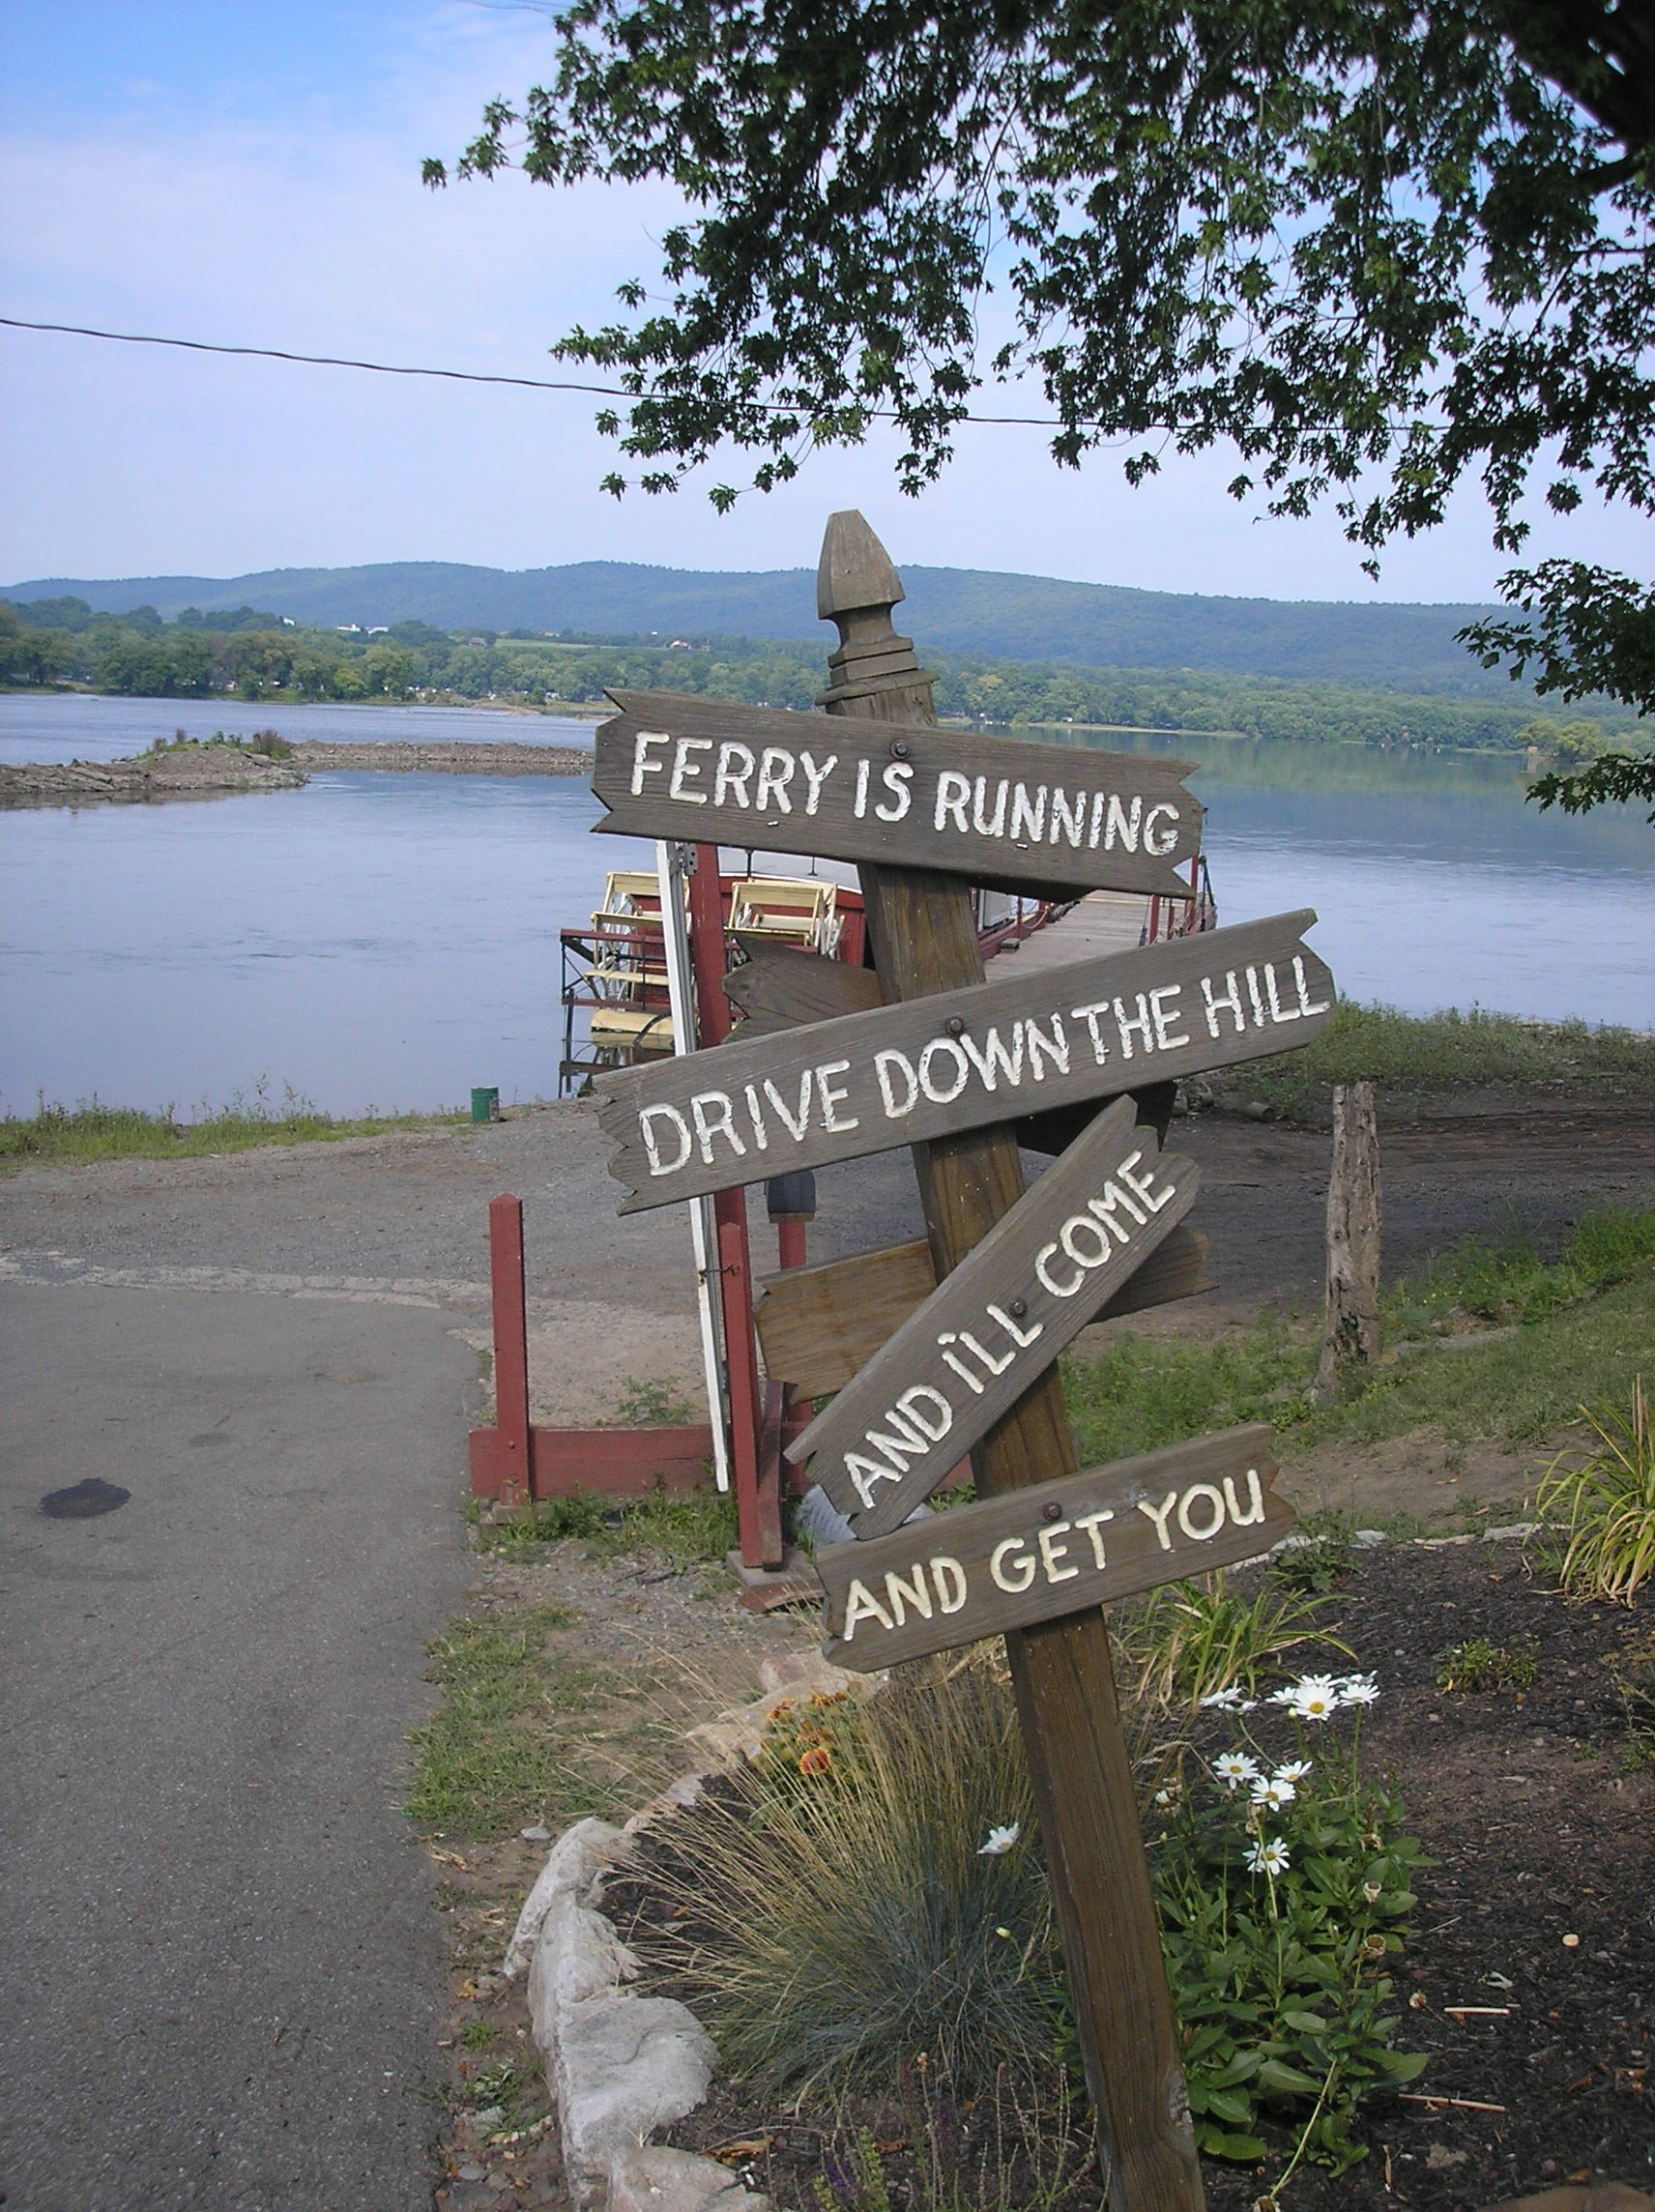 Simple instructions for those wishing to be ferried across the Susquehanna.